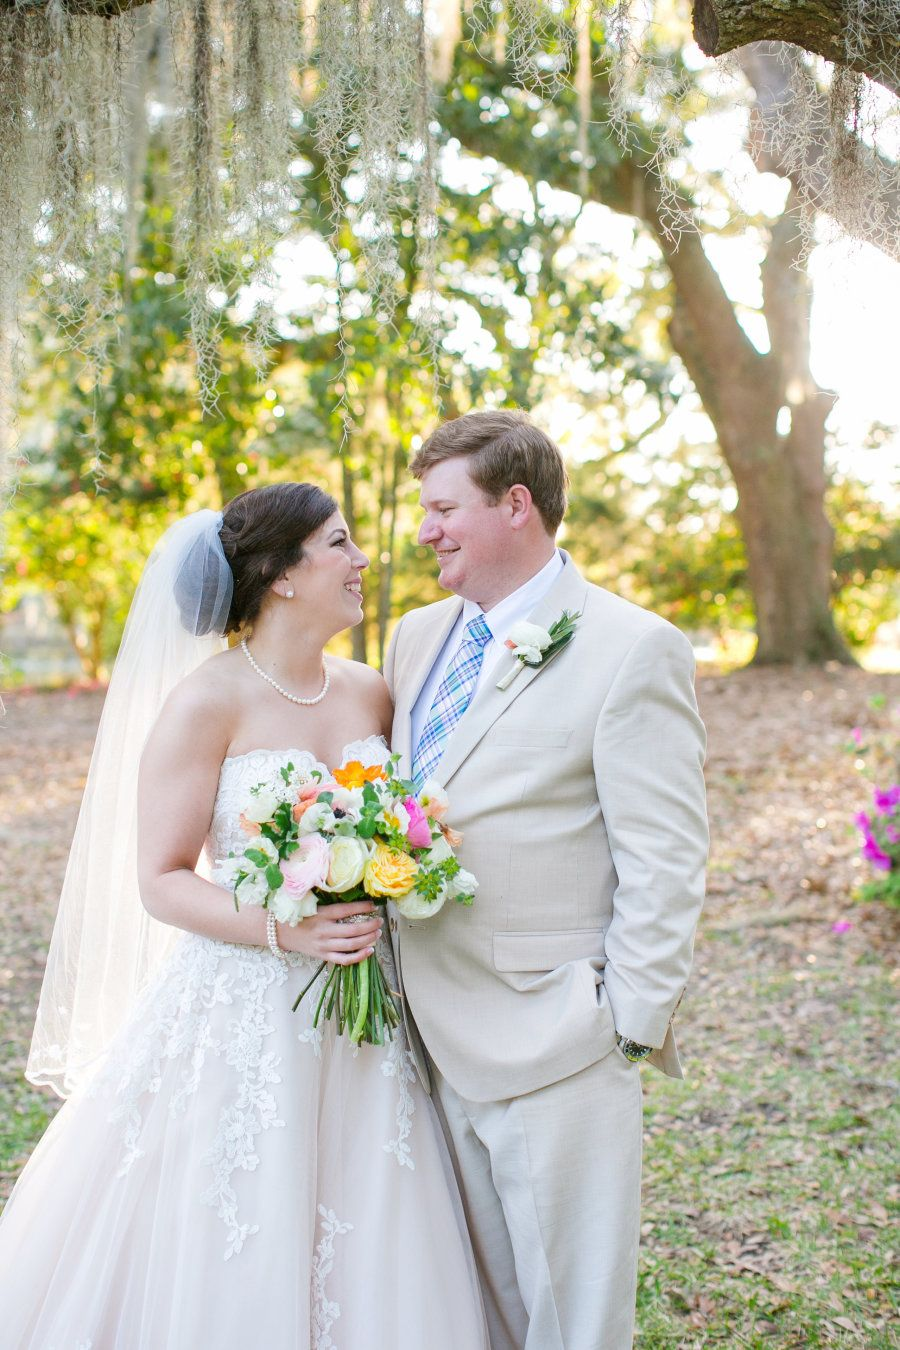 Reed & Katie Wedding // Dana Cubbage Photography // Portraits